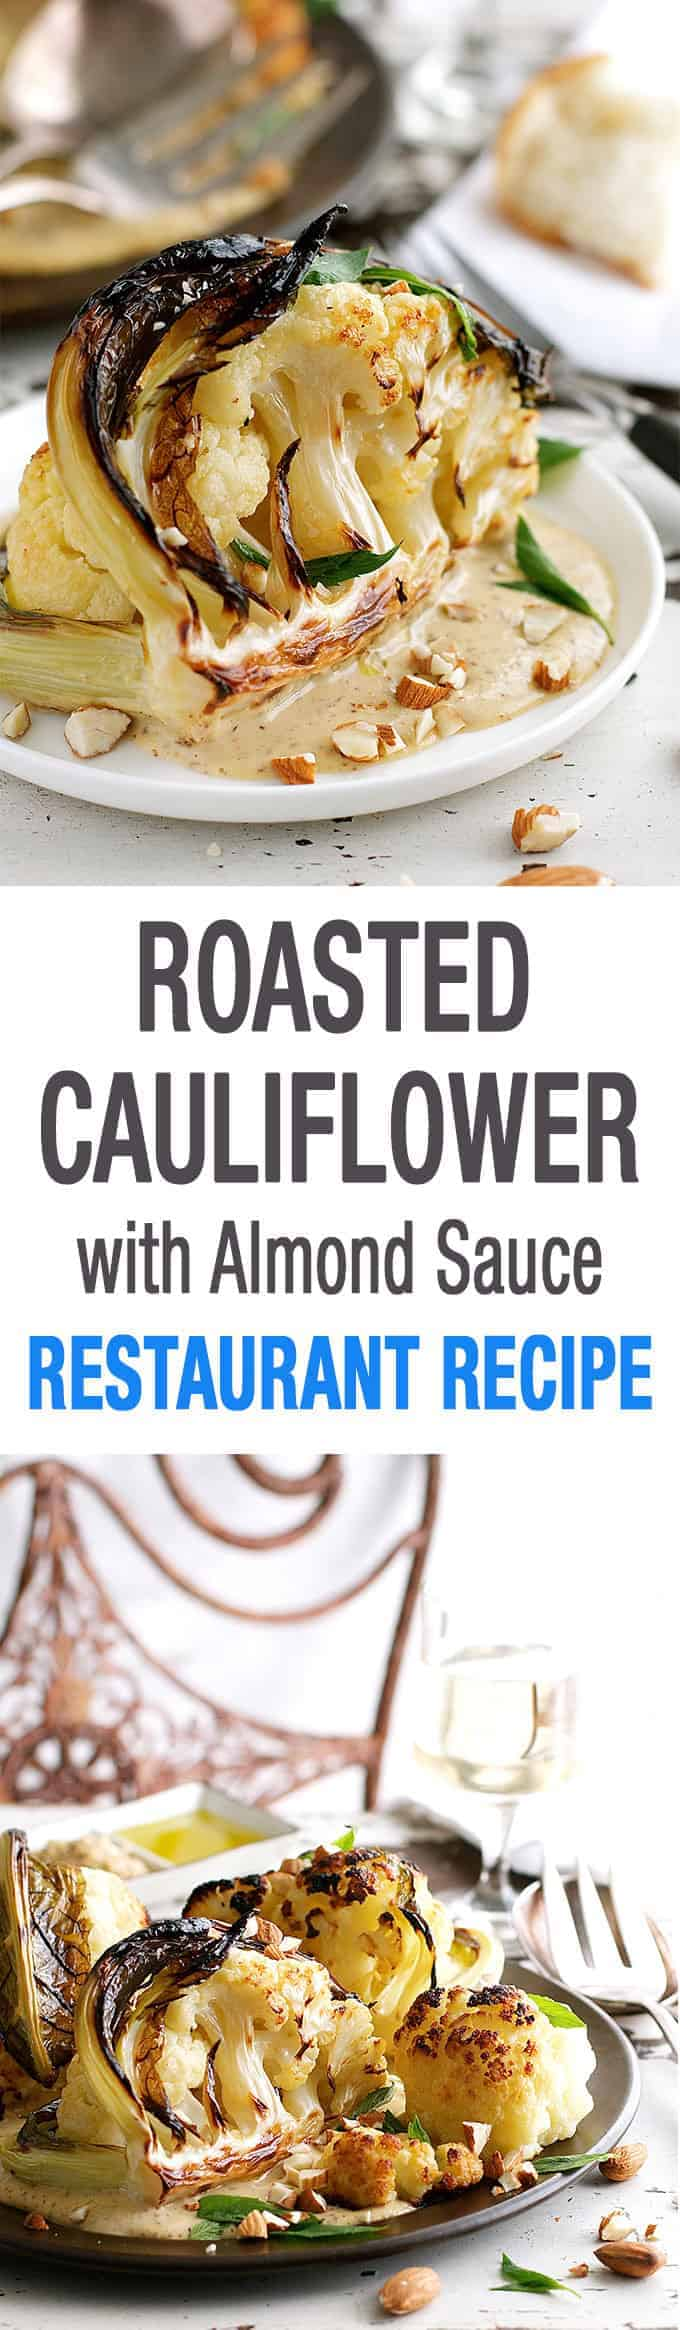 Roasted Cauliflower Almond Sauce - a chef recipe, easy to make. There's a reason why this is a signature dish at one of Sydney's top restaurants (Ester)